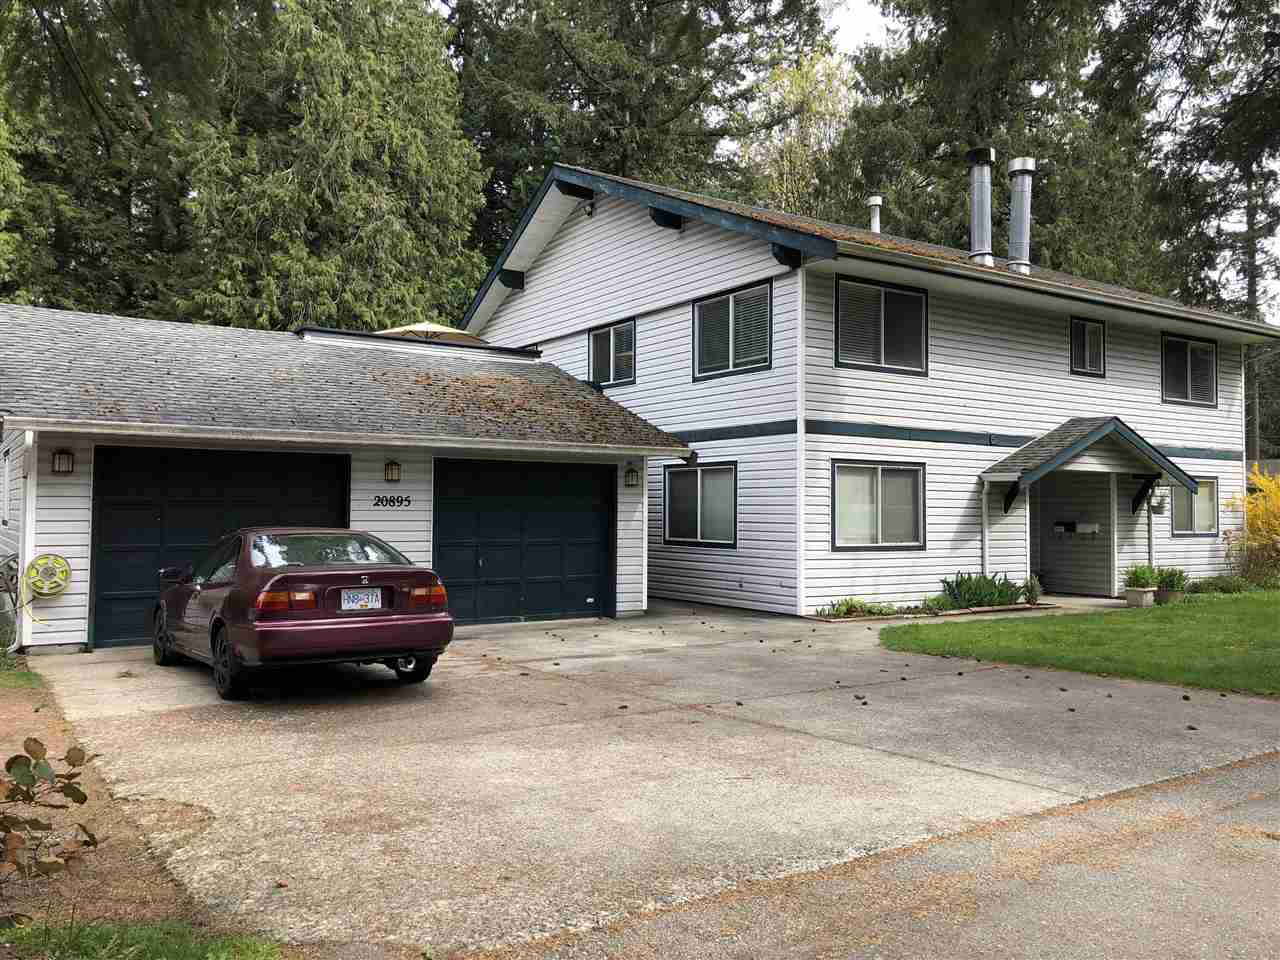 """Main Photo: 4207 209 Street in Langley: Brookswood Langley House for sale in """"Brookswood"""" : MLS®# R2368046"""